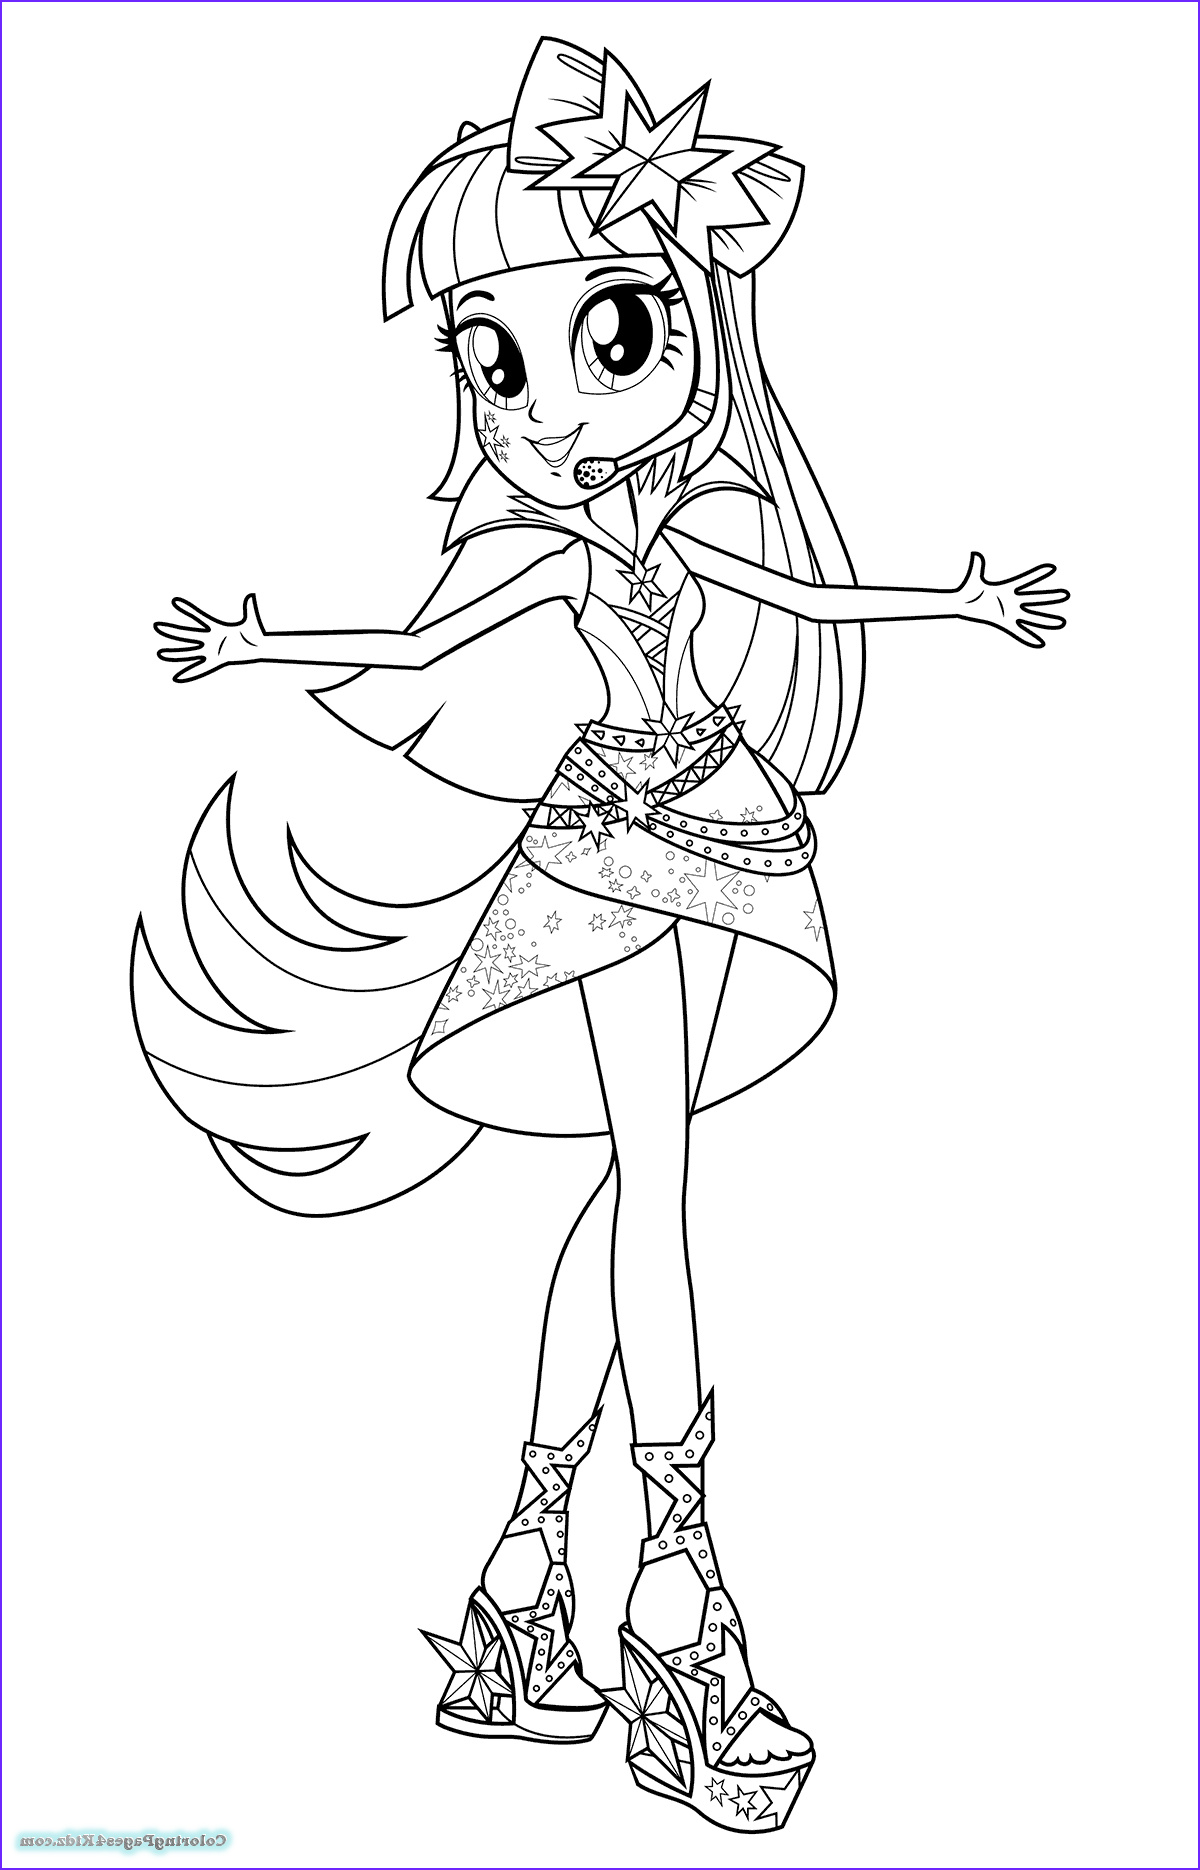 equestria girls rainbow rocks coloring pages 1010